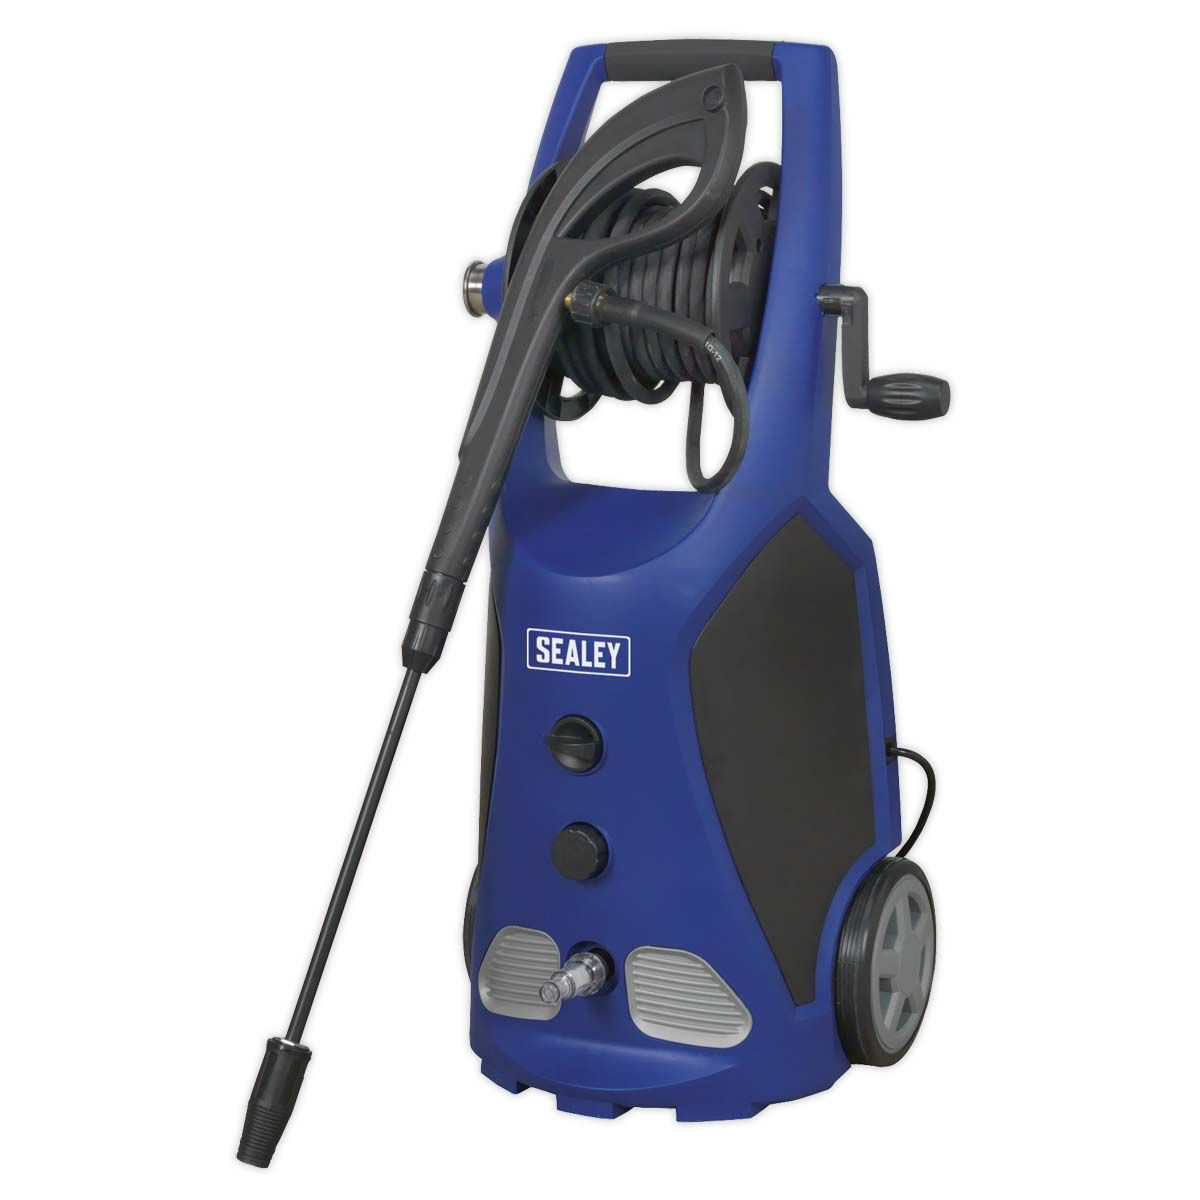 Sealey Professional Pressure Washer 140bar with TSS & Rotablast Nozzle 230V